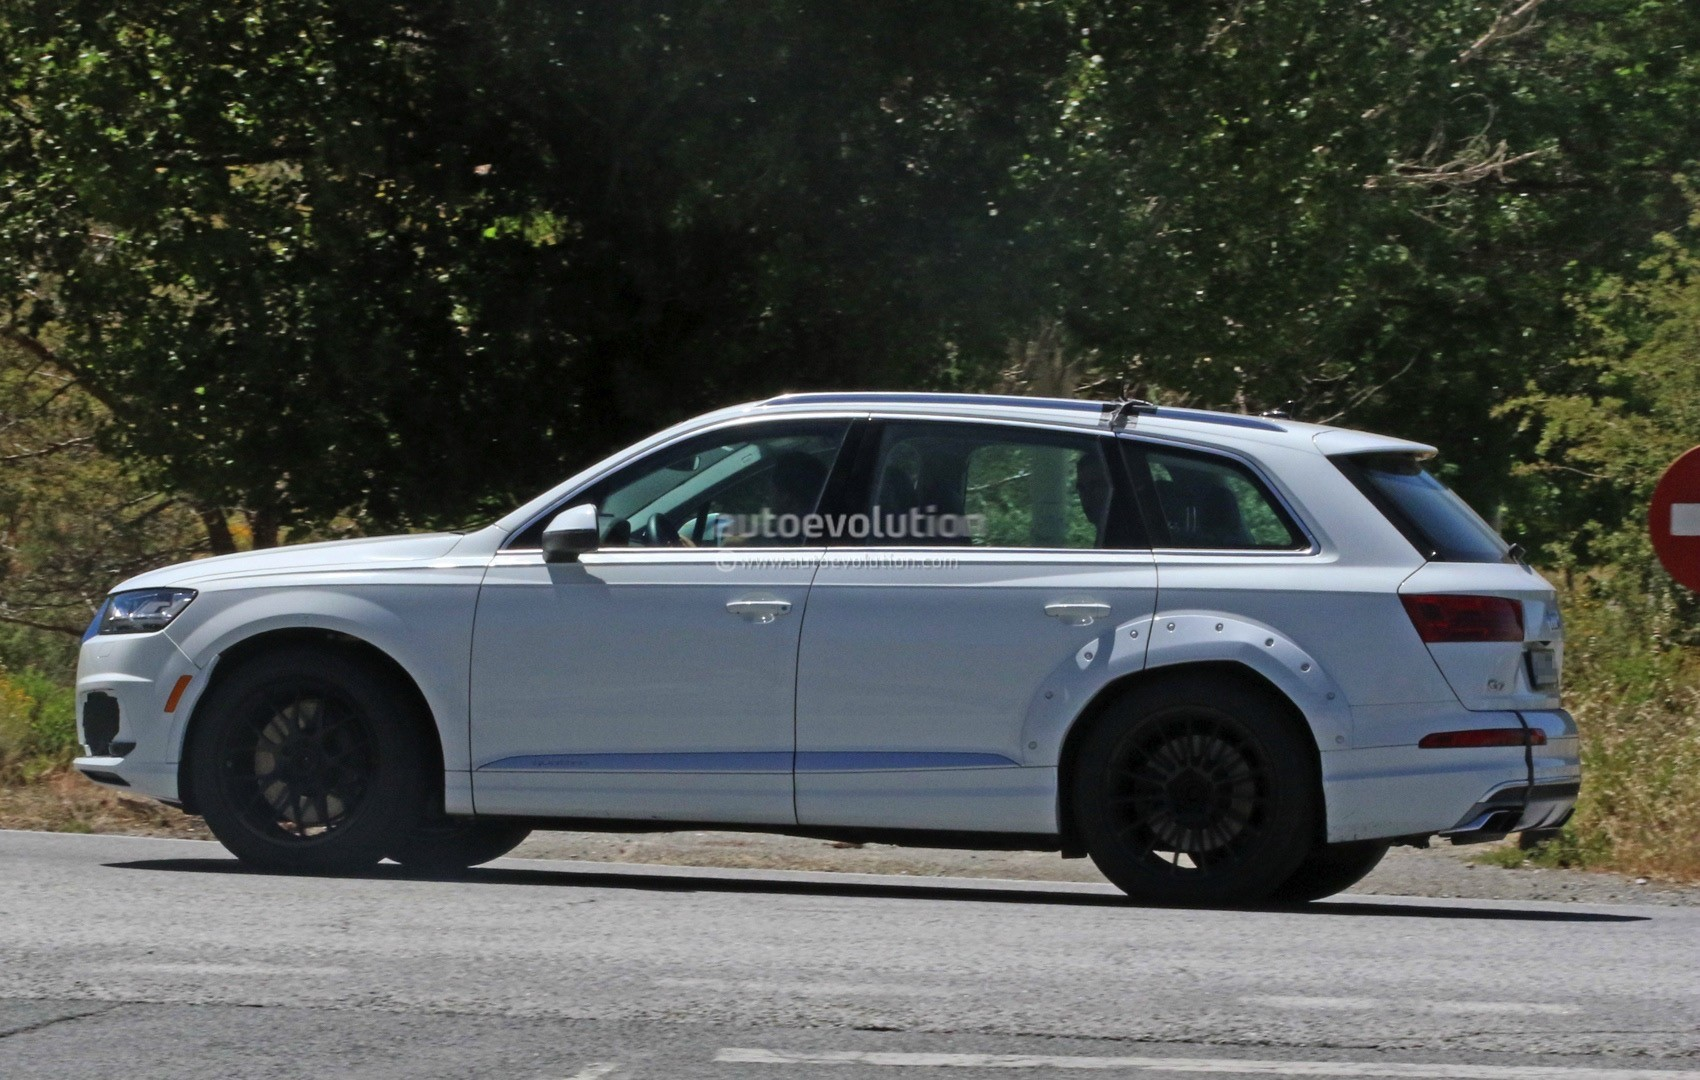 2018 Audi Q8 Test Mule Spied Wearing Q7 Bodyshell